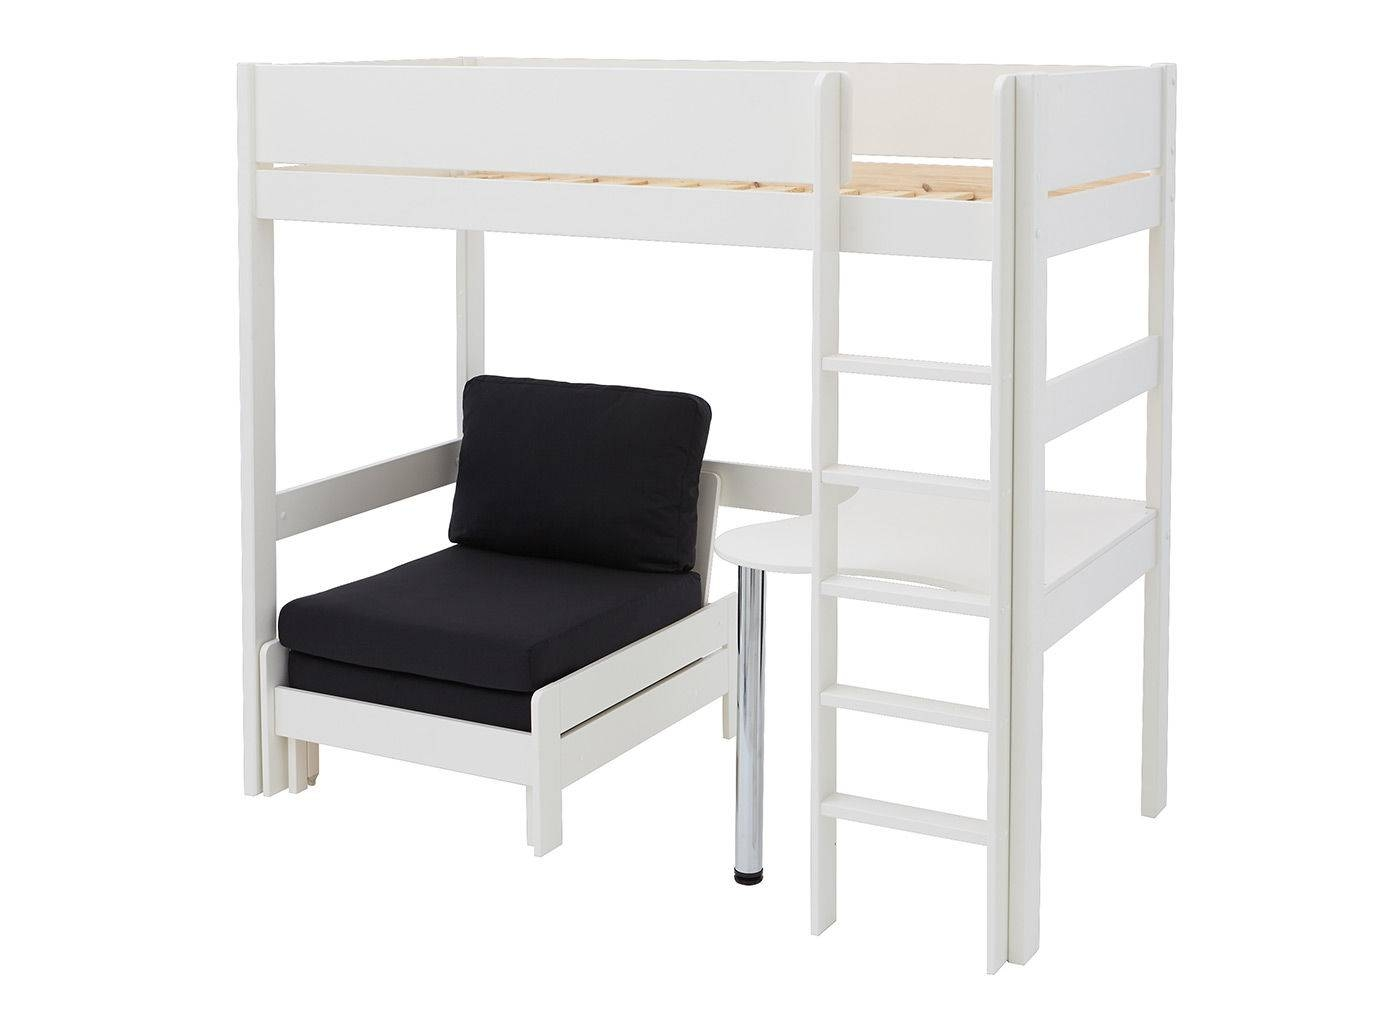 Buy Kids' High Sleepers At Dreams | Quality & Fun High Sleeper within High Sleeper With Desk and Sofa (Image 3 of 30)